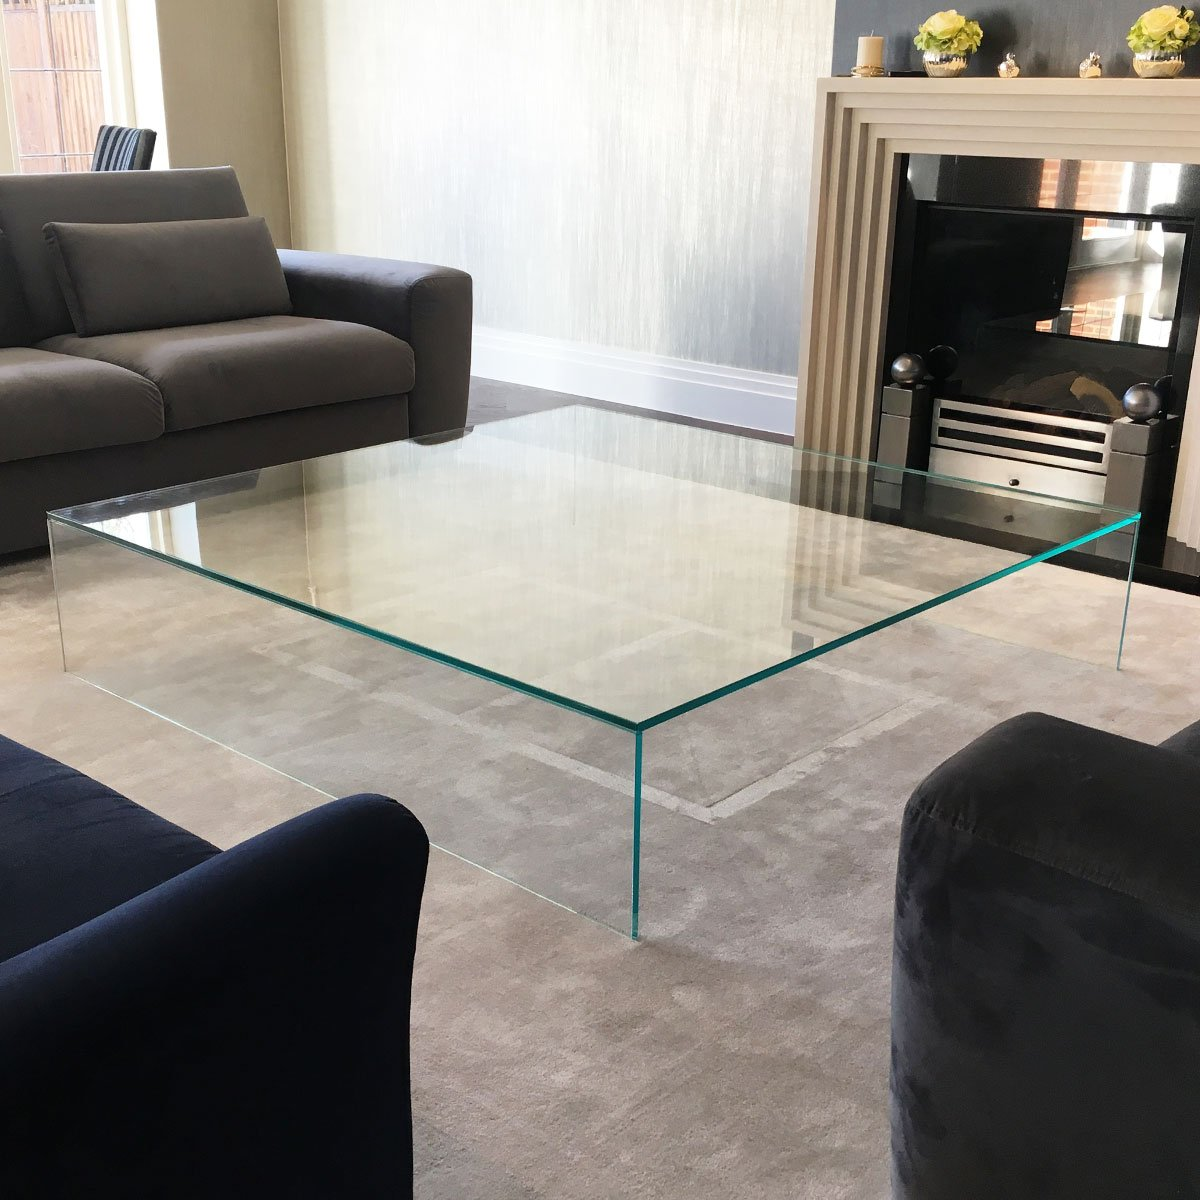 Big Glass Coffee Tables: Large Glass Coffee Table